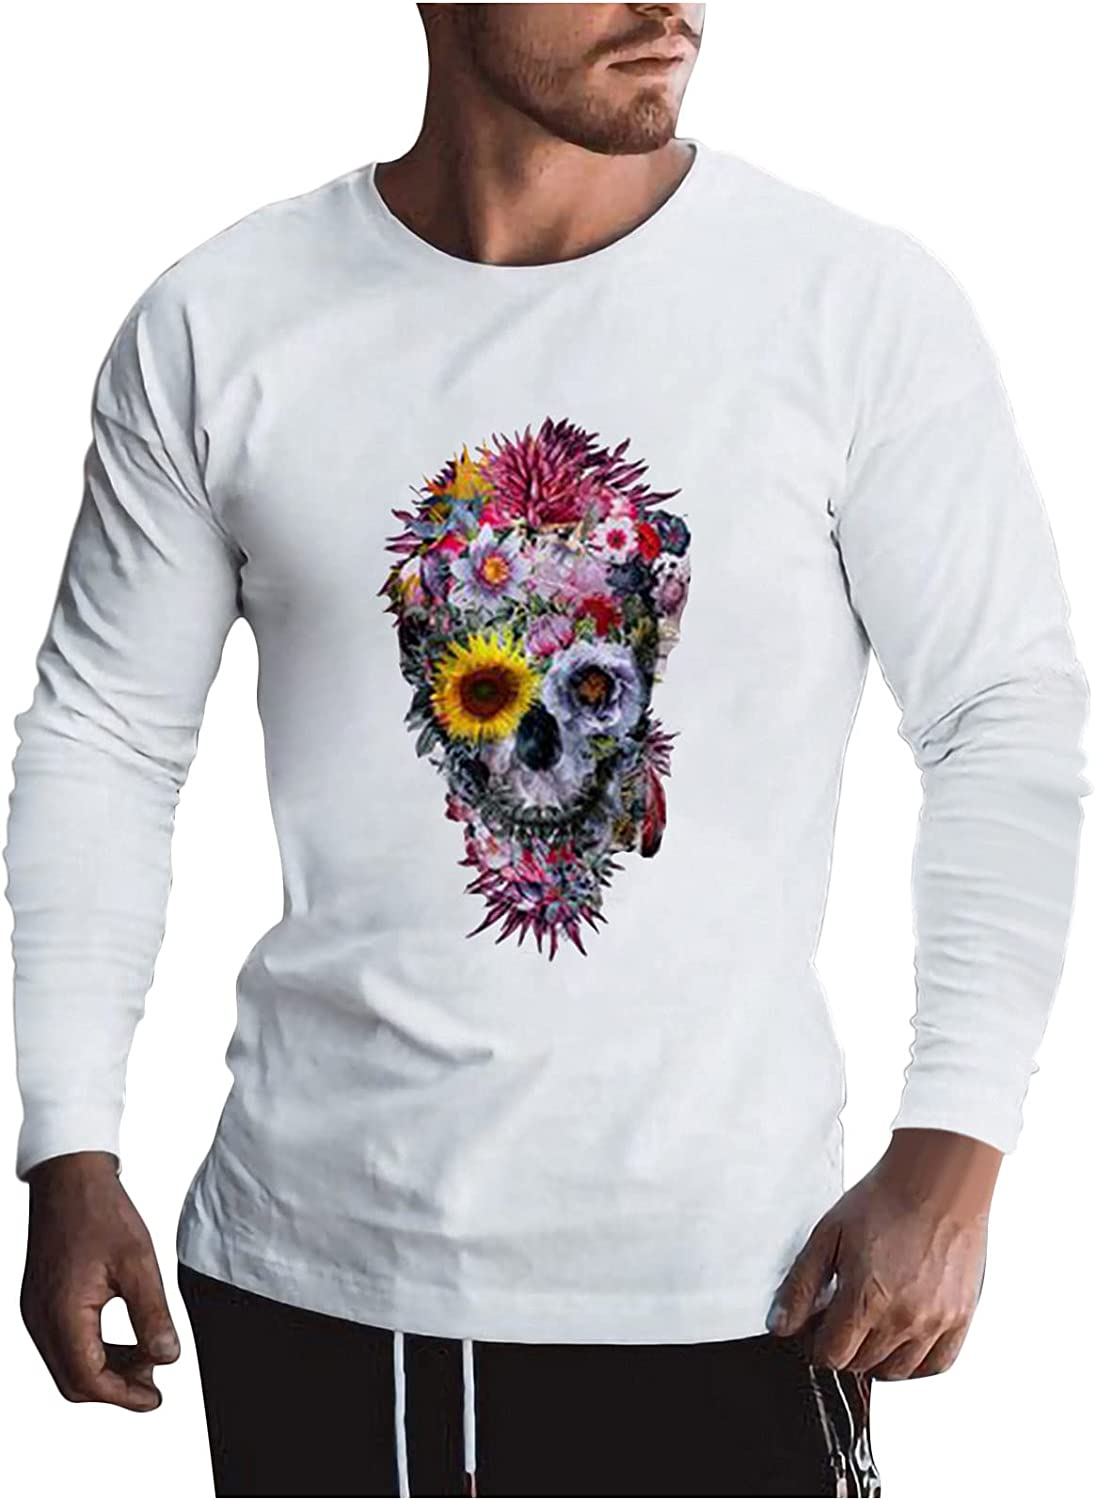 Fashion Men White Shirts, Halloween Skull Printed Long Sleeve Pullover Tops Fall Casual Breathable Bottoming